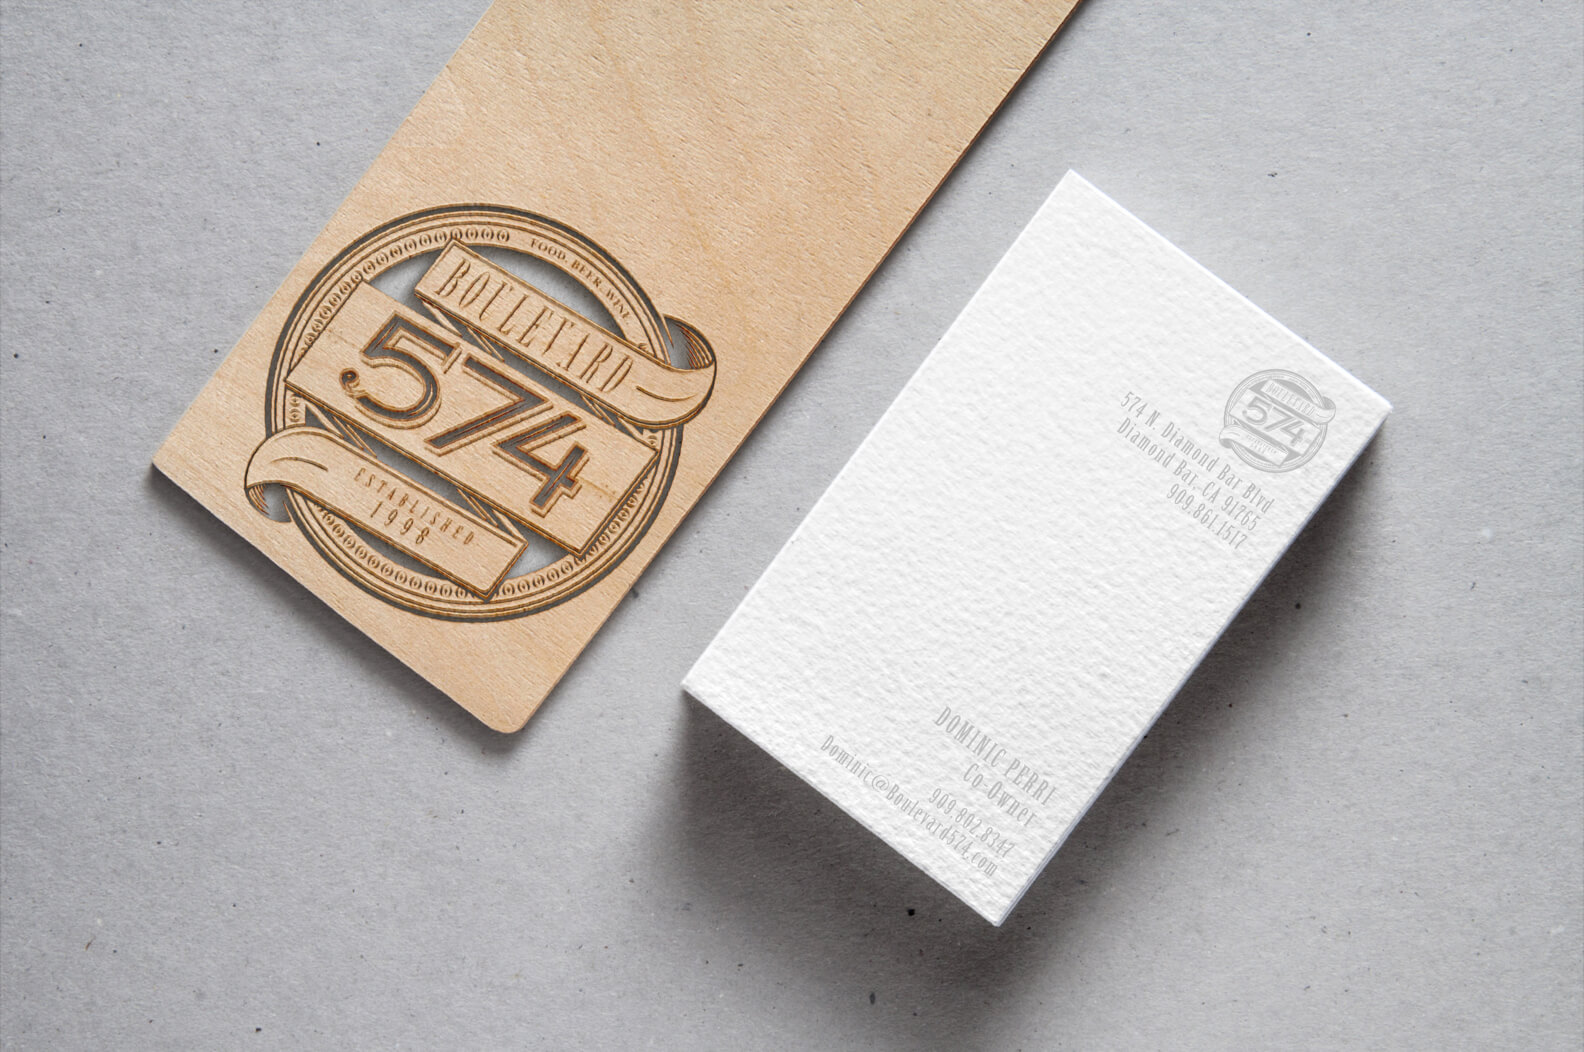 Boulevard 574 branding by chevail alexander the primary logo created was used across all updated assets for the cafe including business cards letterheads windows coasters and beer flight holders magicingreecefo Gallery